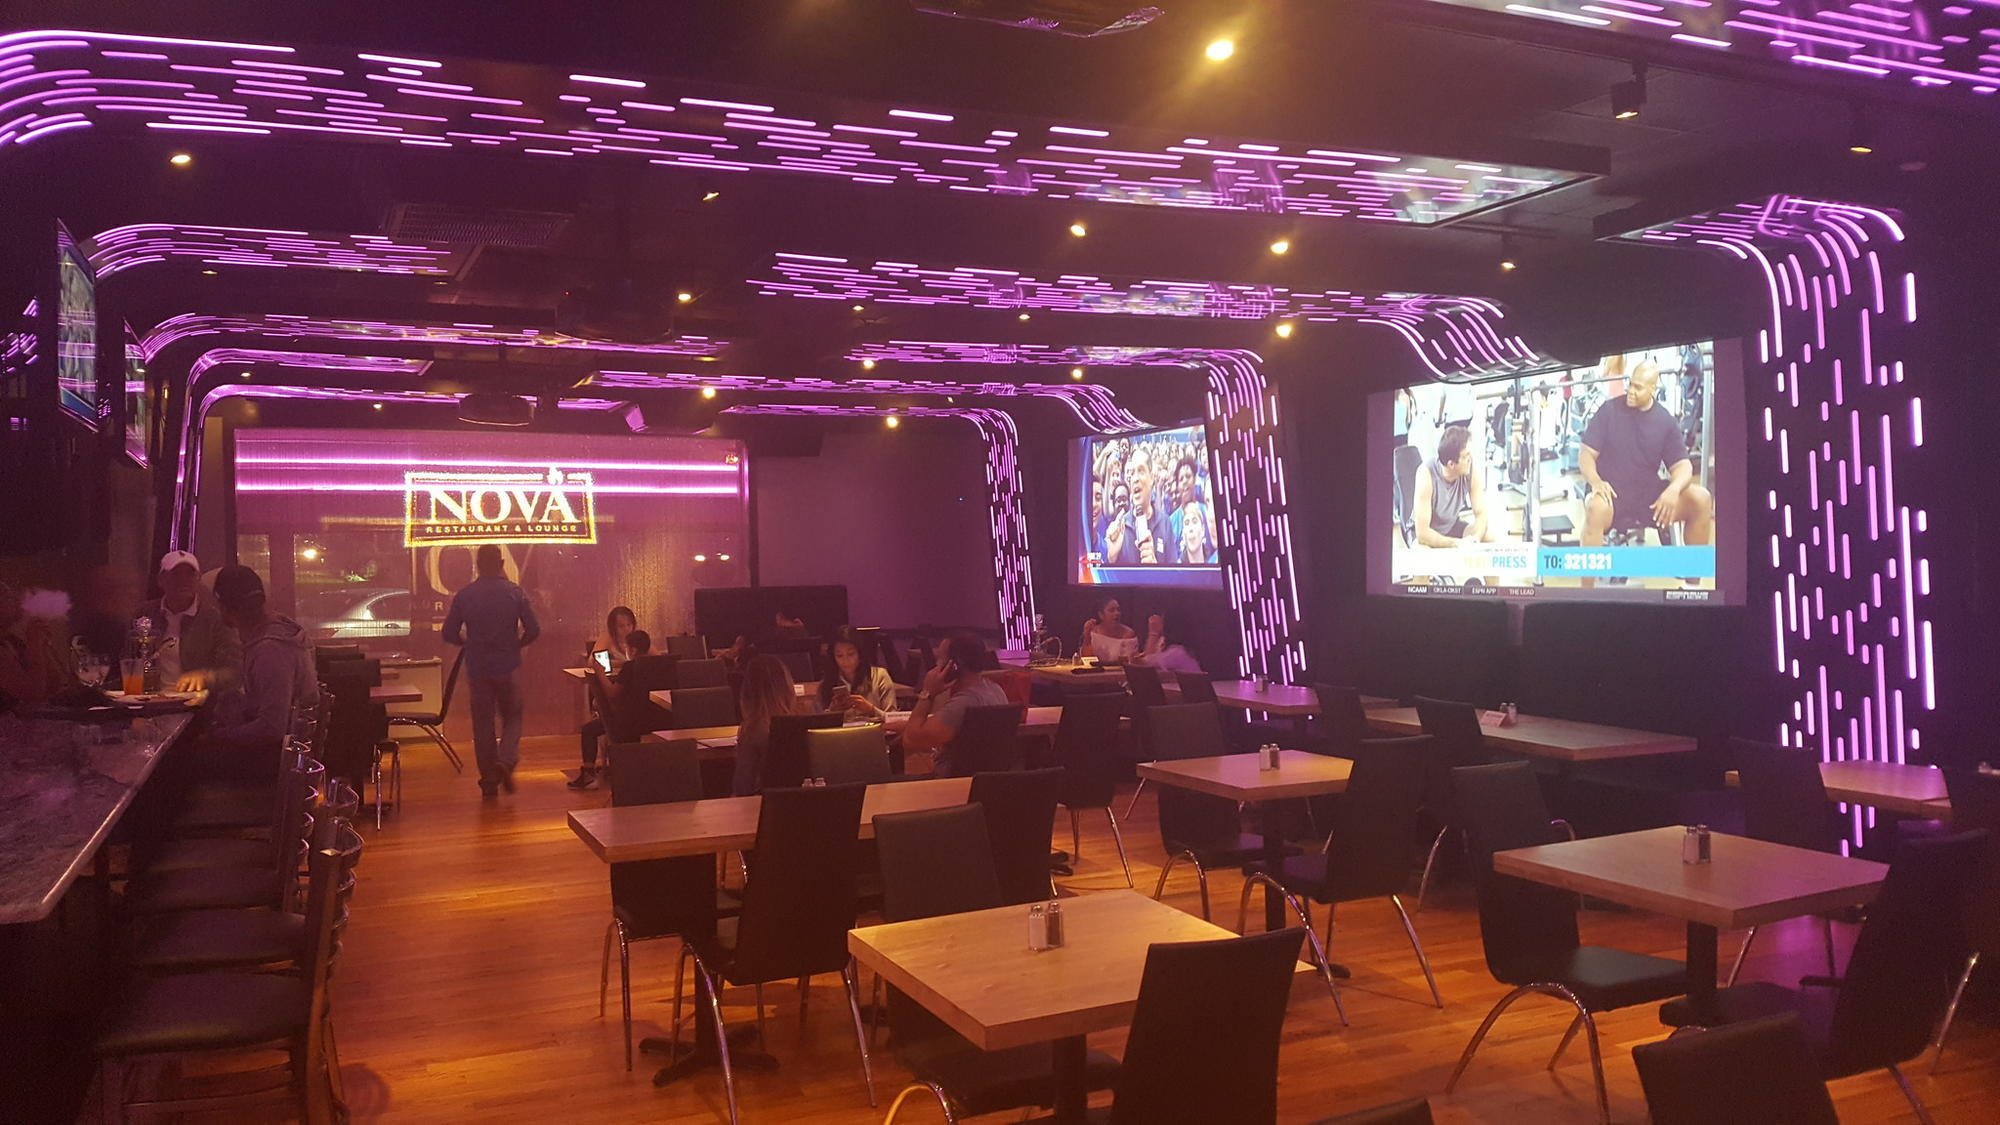 Nova Restaurant Lounge Opens At Former Okis Spot In South Allentown The Morning Call